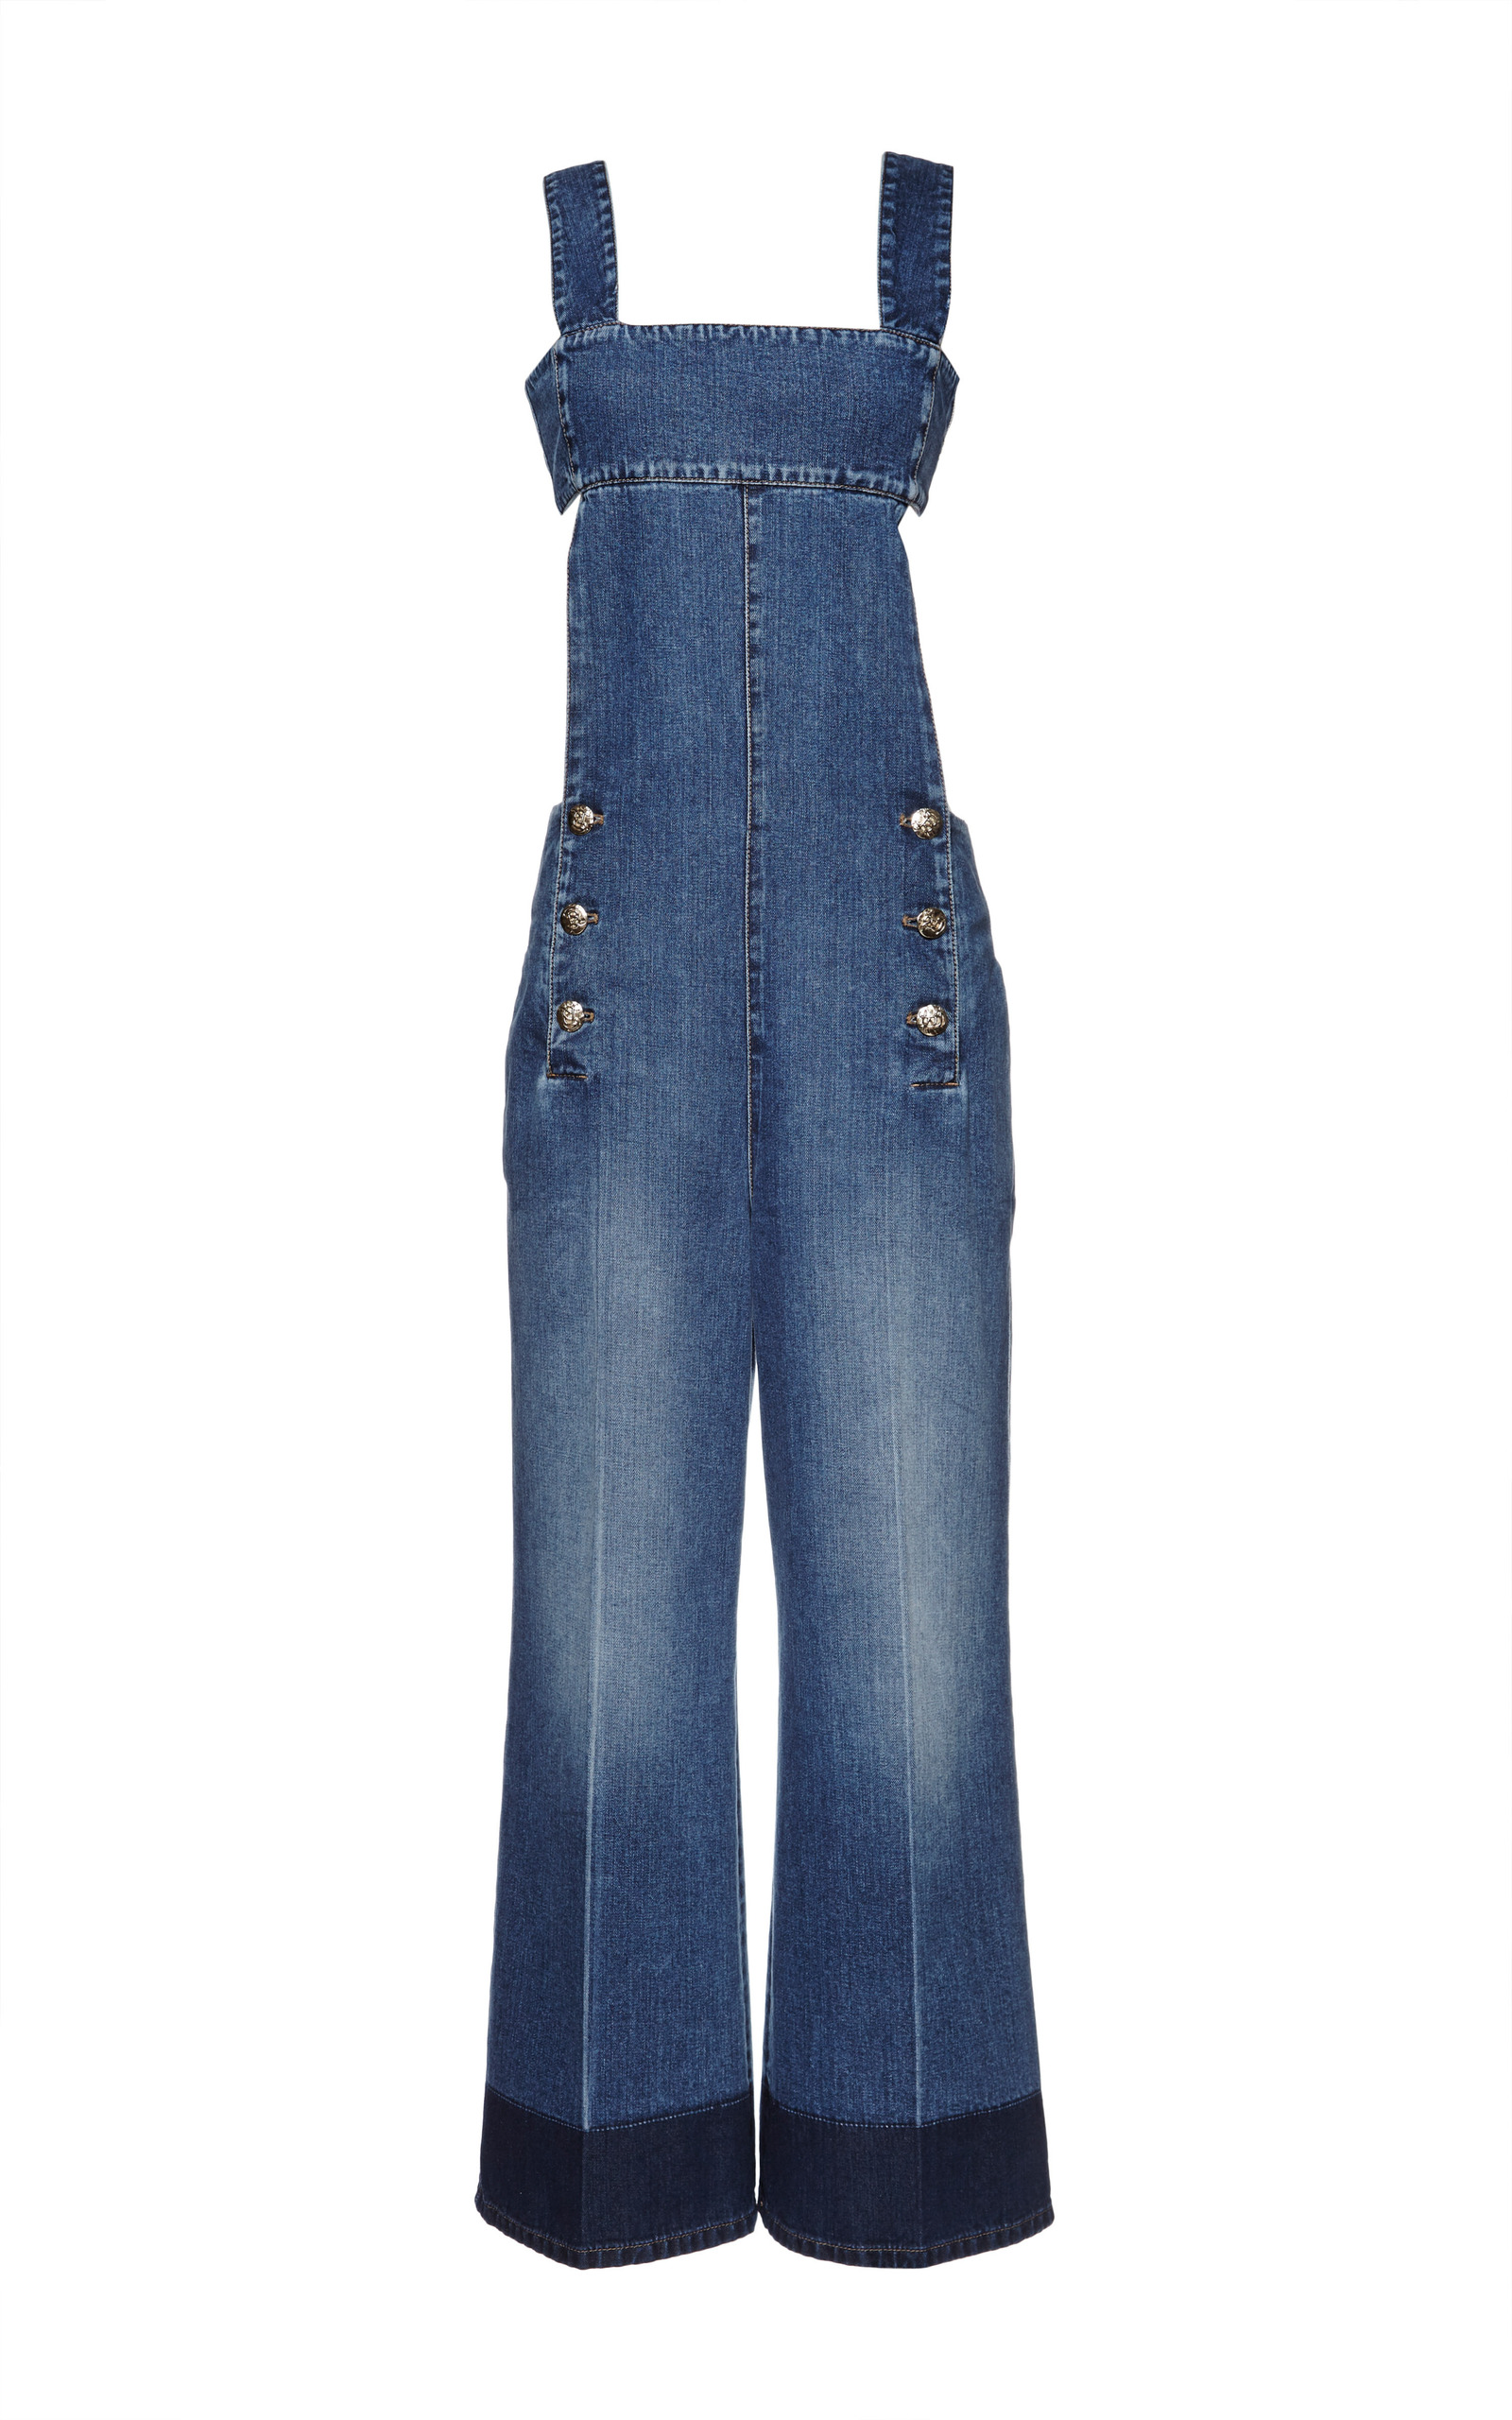 a5daf80f317 Sonia RykielBlue Washed Denim Jumpsuit. CLOSE. Loading. Loading. Loading.  FULL SCREEN. Click Product to Zoom